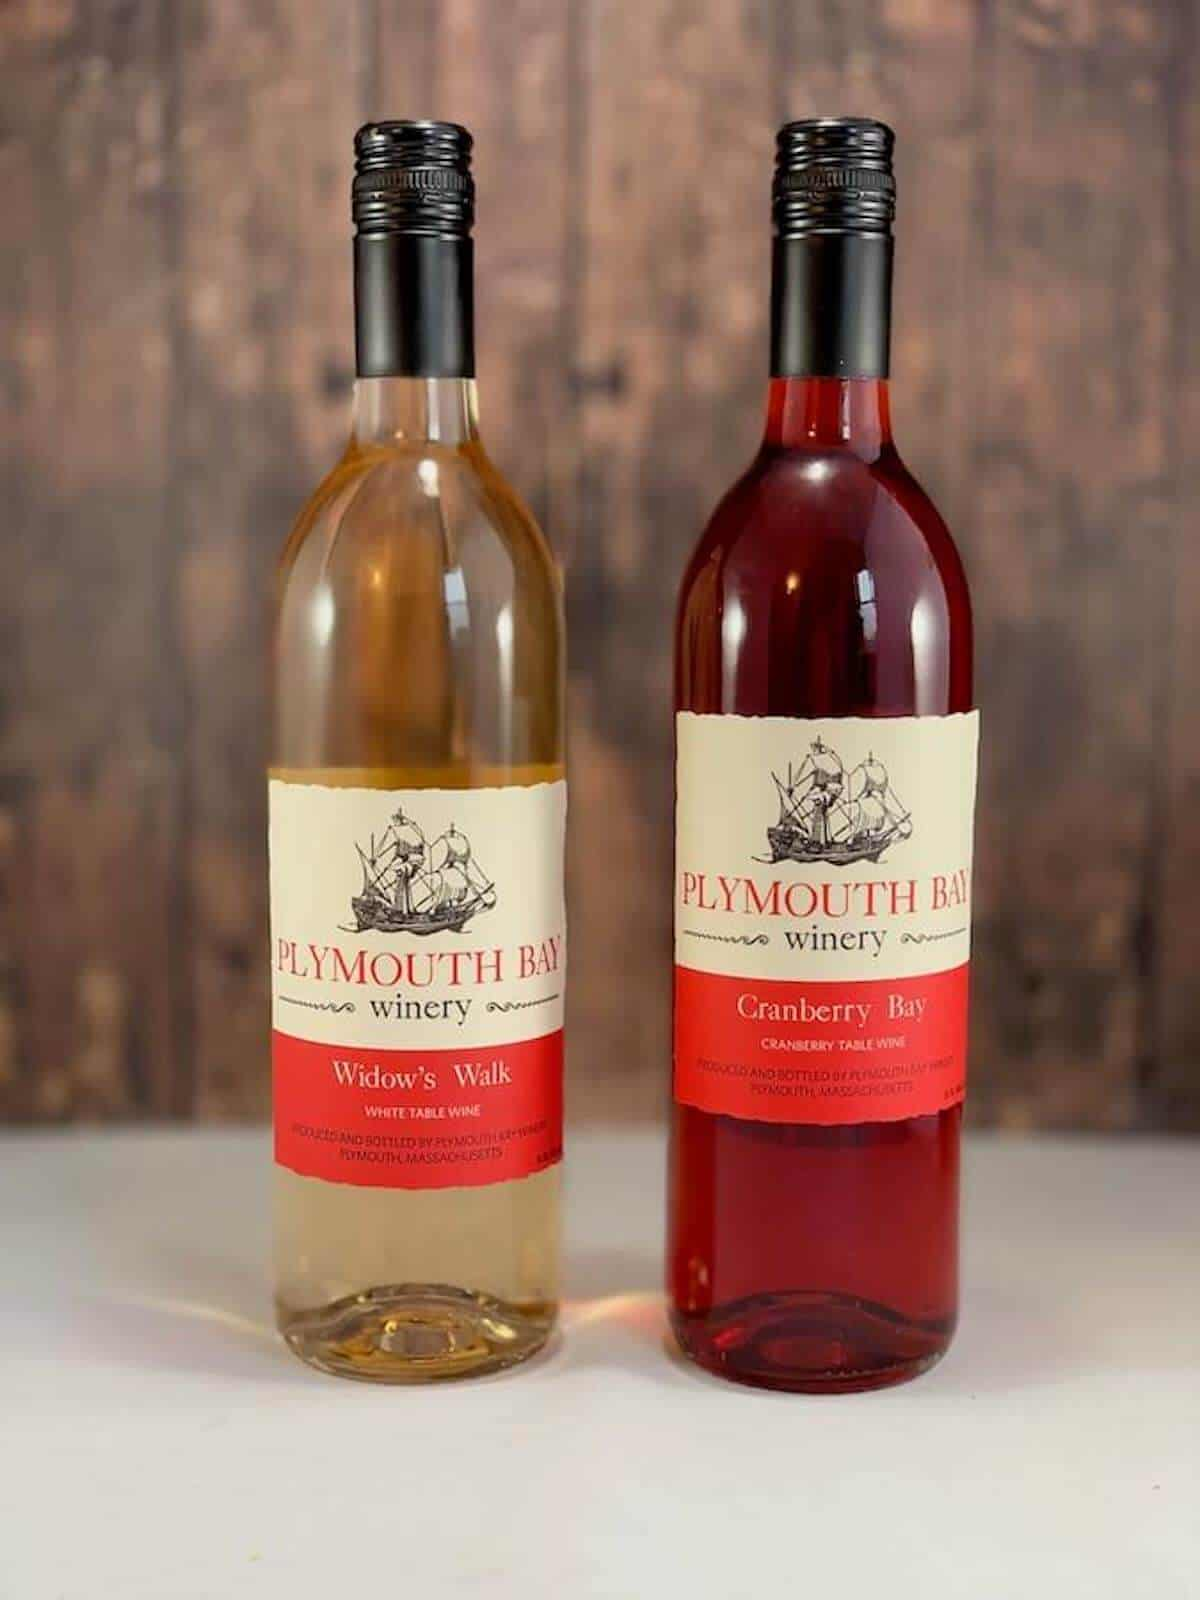 Plymouth Bay Winery Widow's Walk table wine and Cranberry Bay table wine in bottles